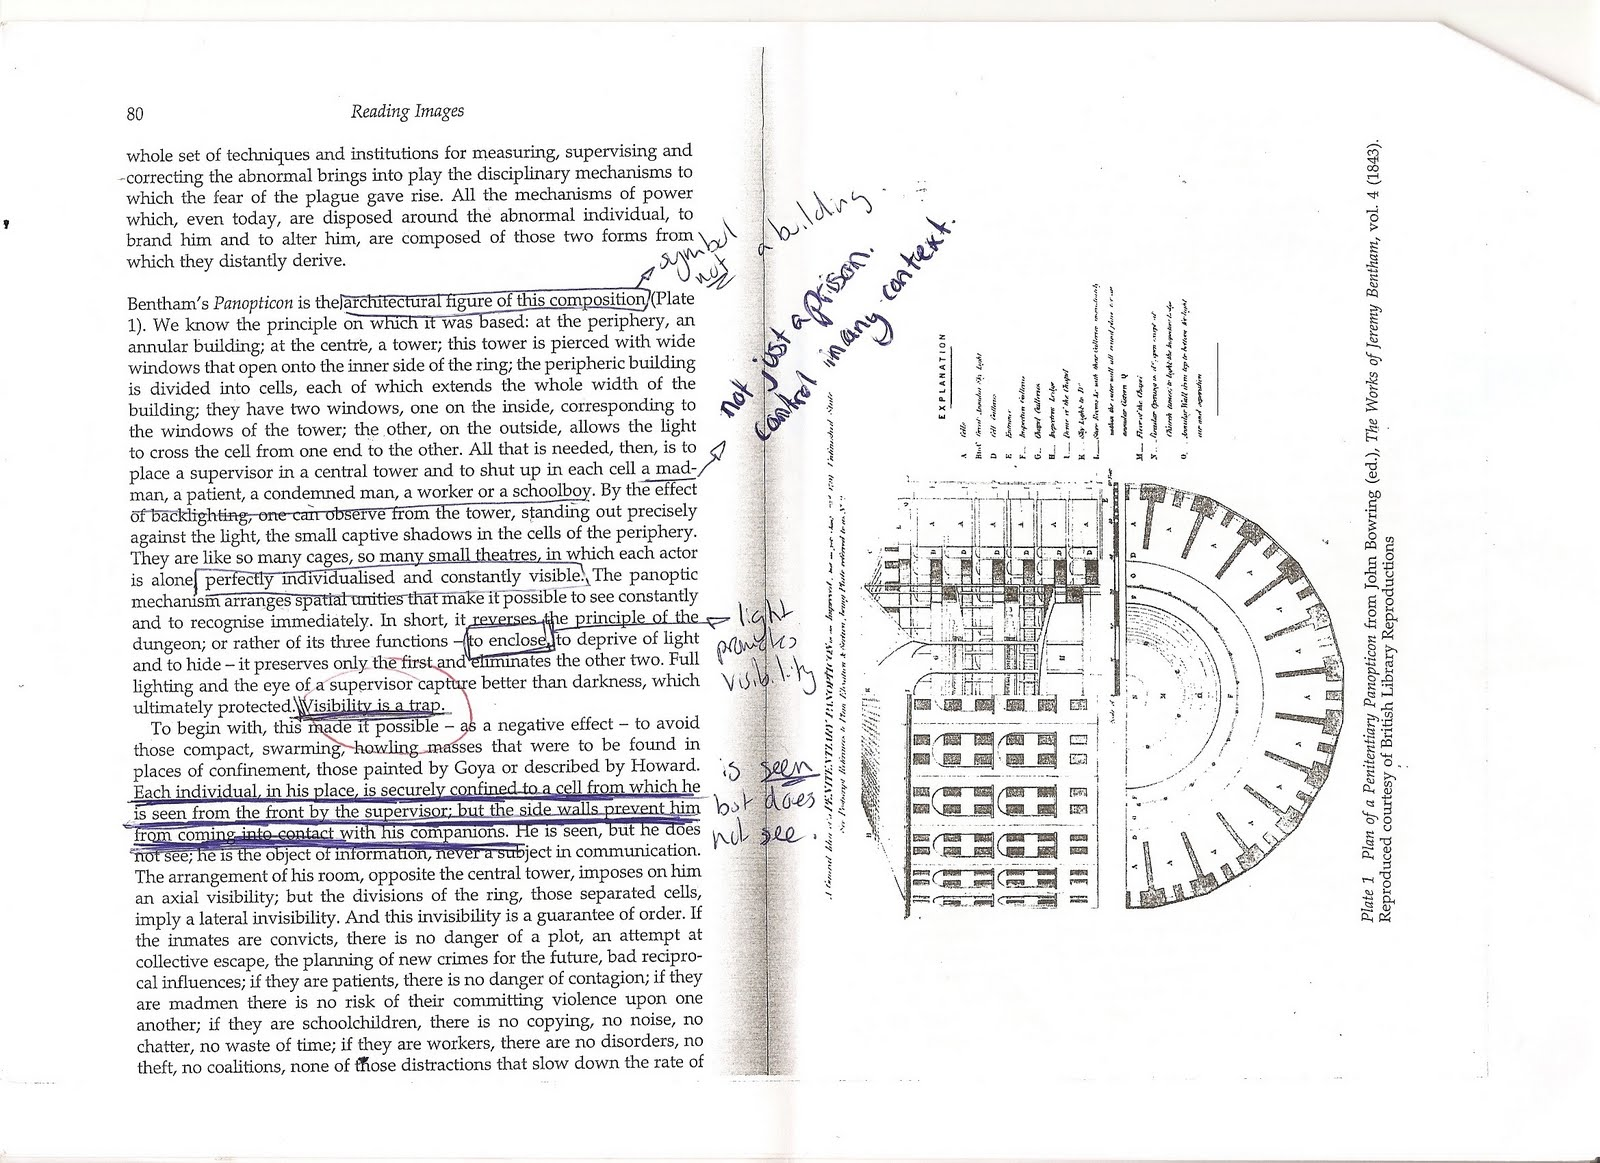 foucault essay on panopticism Disciplinary power: panopticism in discipline and punish (1975), foucault introduces two idea of what he term's 'technologies of punishment' within these technologies are two representations of punishment monarchal punishment referring to the public and torturous punishment practices present during.